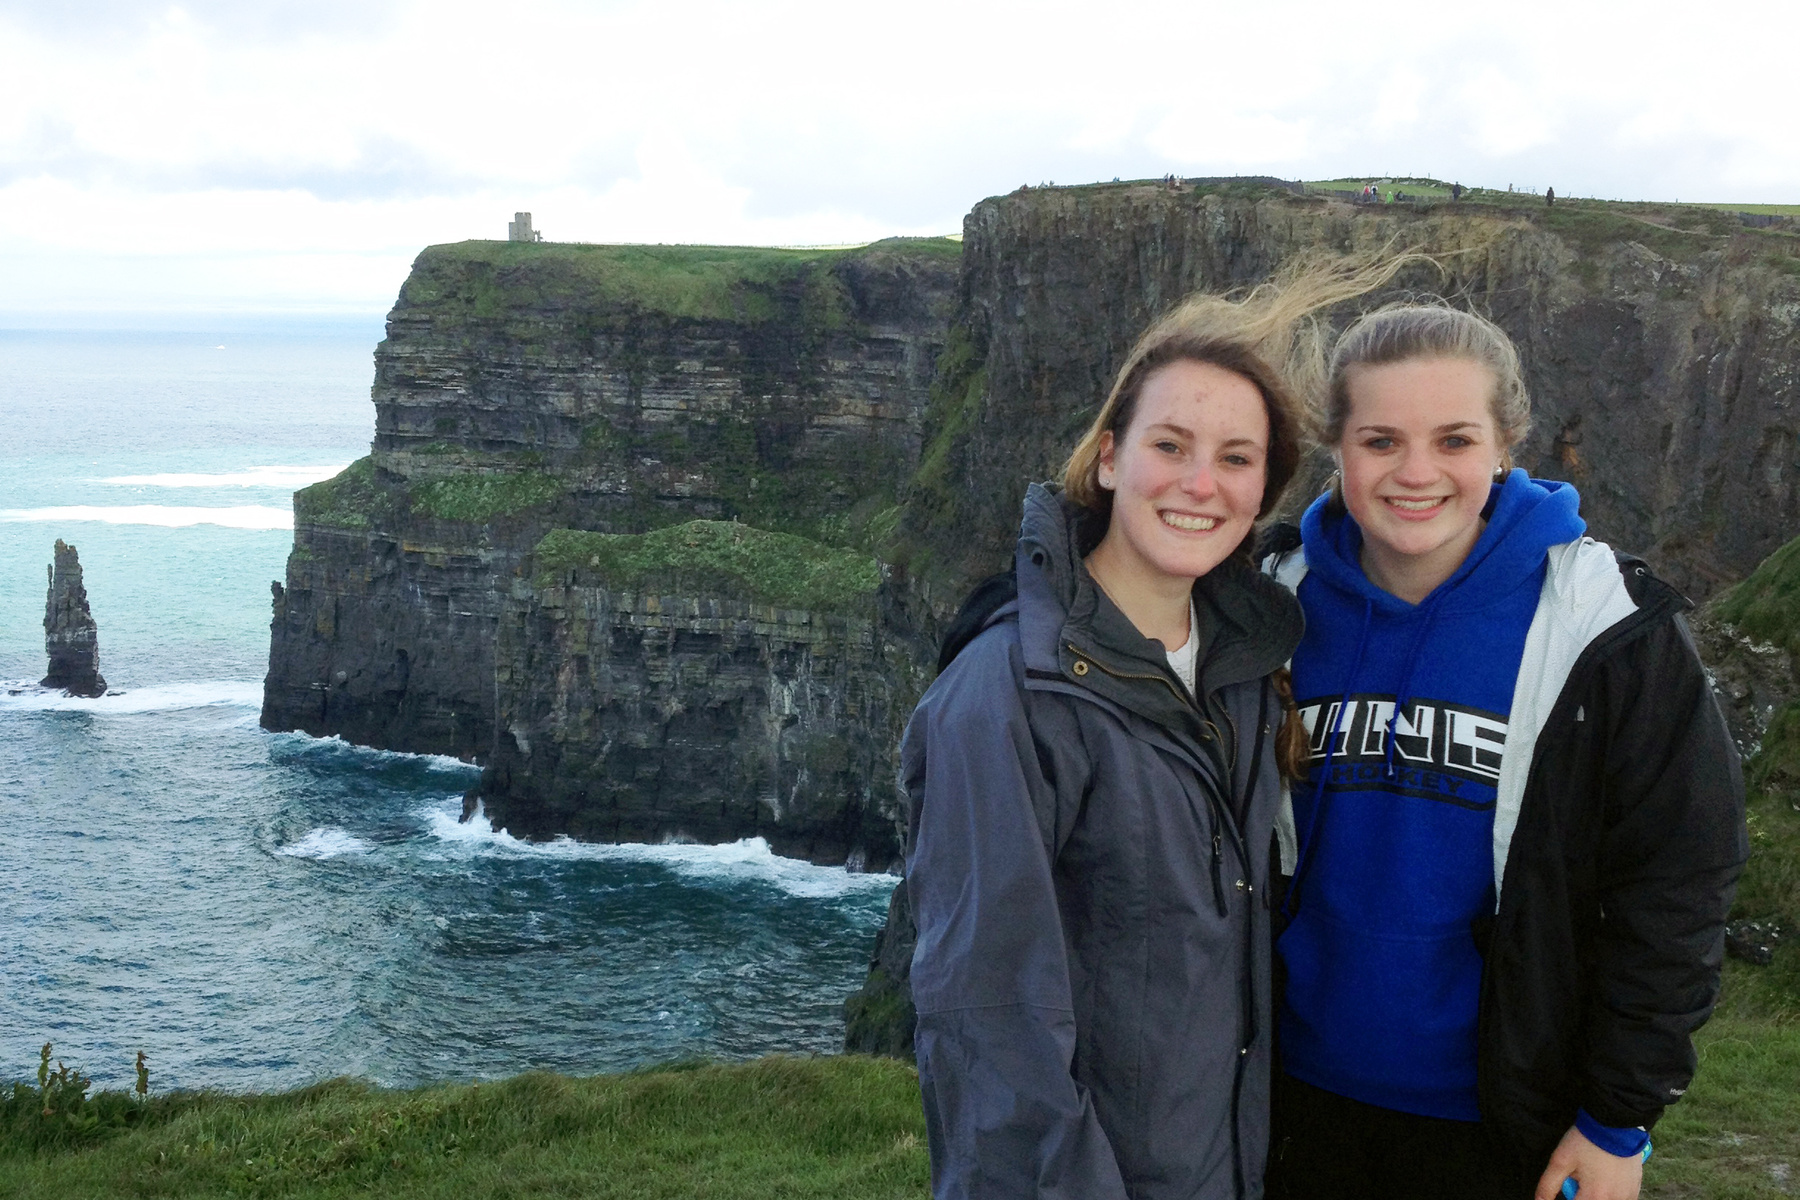 Two female students pose on a seaside cliff in Ireland